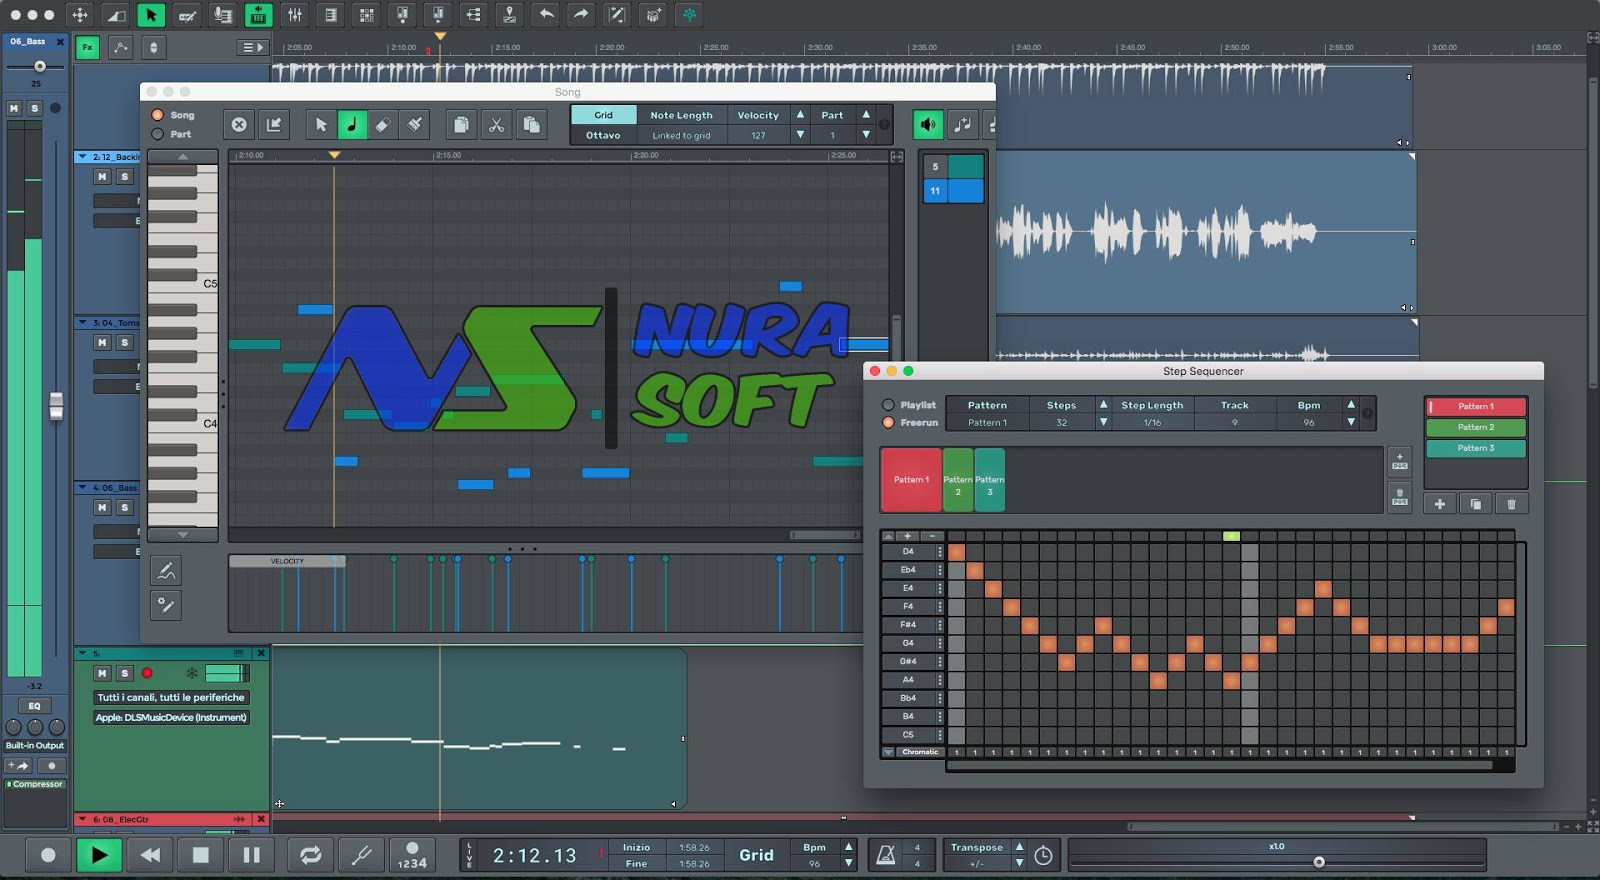 N Track Studio X64 Final Full Version Patch 8 1 3